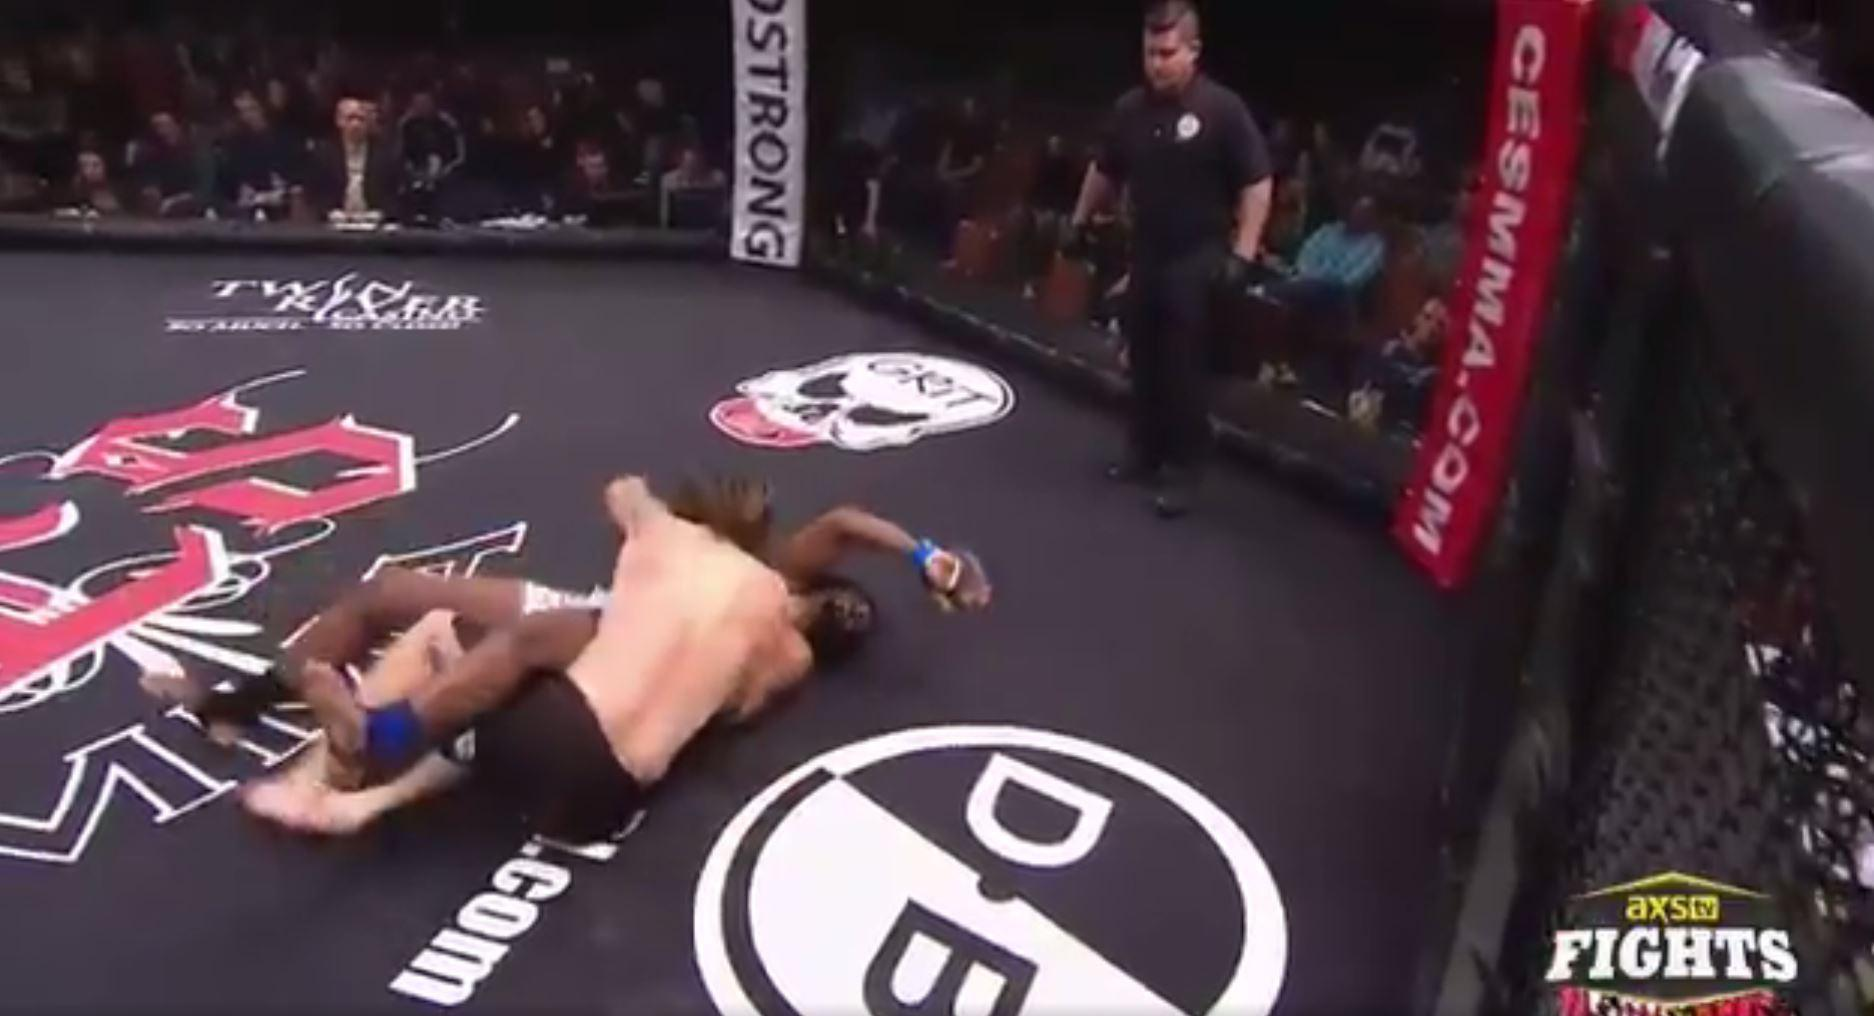 The referee quickly stepped in with Timothy Woods unconscious